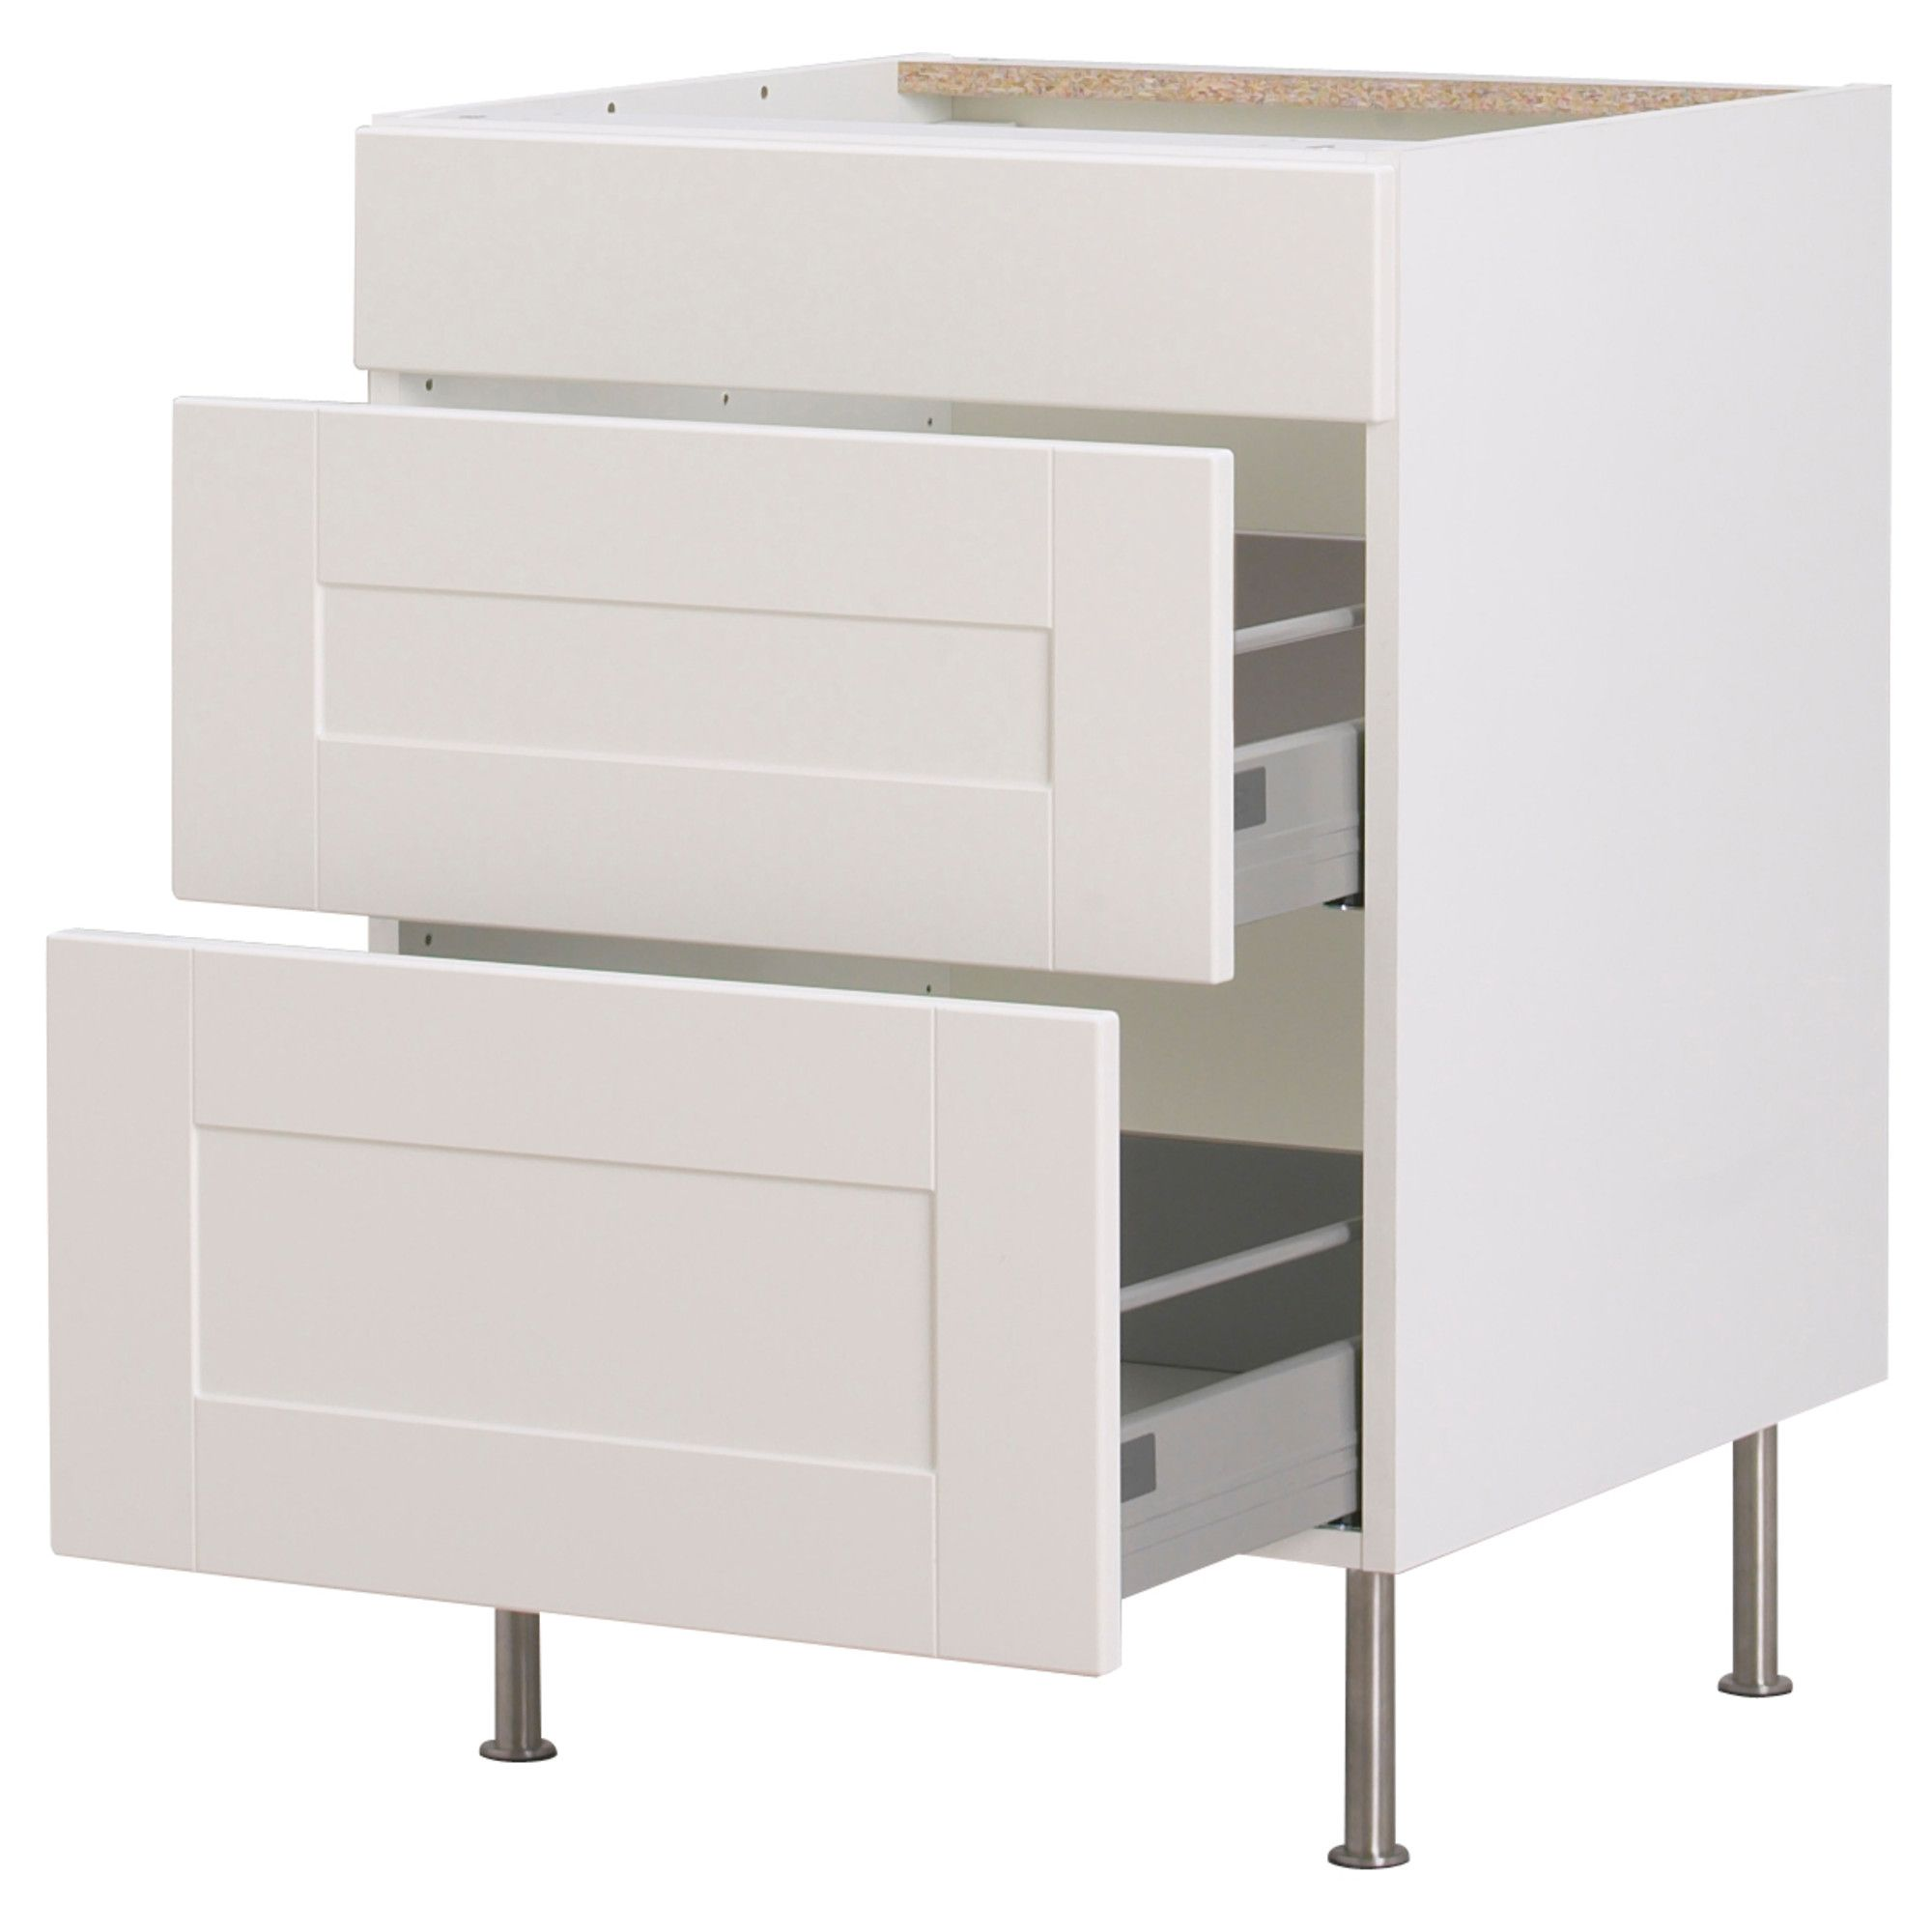 Ikea Off White Kitchen Cabinets Kitchen Cabinets Akurum Base Cabinet With 3 Drawers